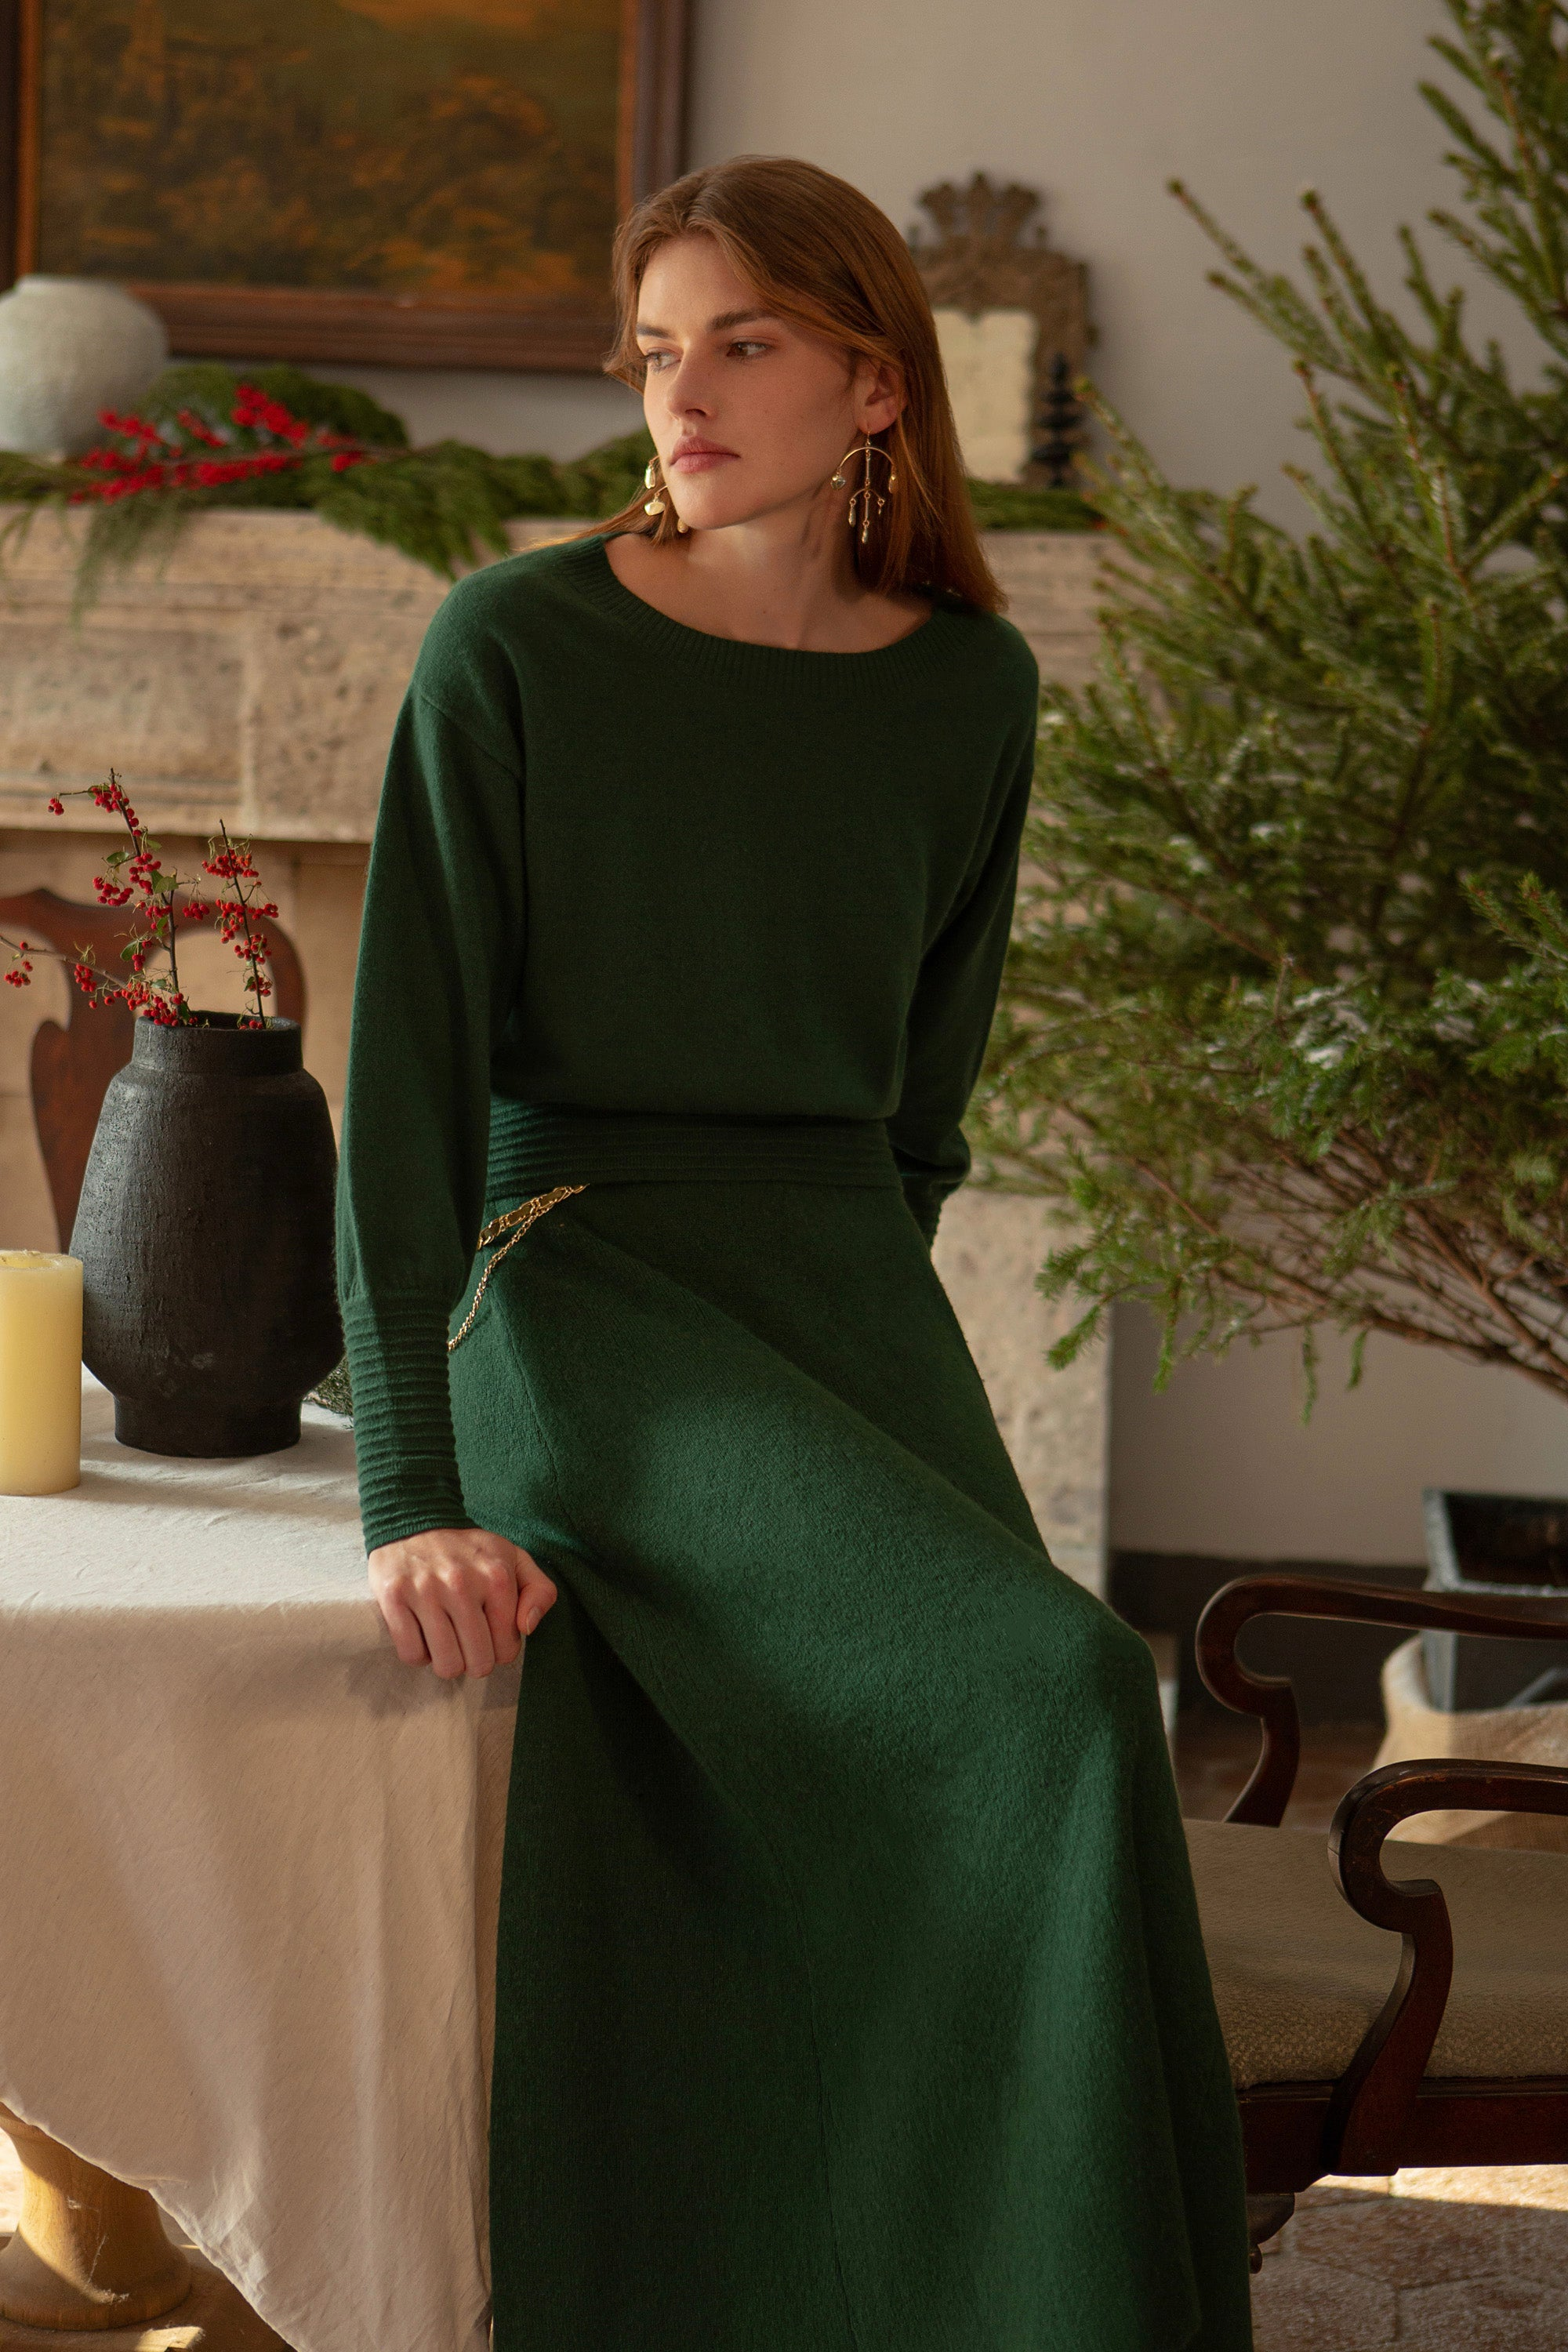 green sweater, green sweater women, green cashmere sweater, crew neck cashmere sweater, crew neck sweater womens, bishop sleeve sweater, bishop sleeve, bishop sleeve top